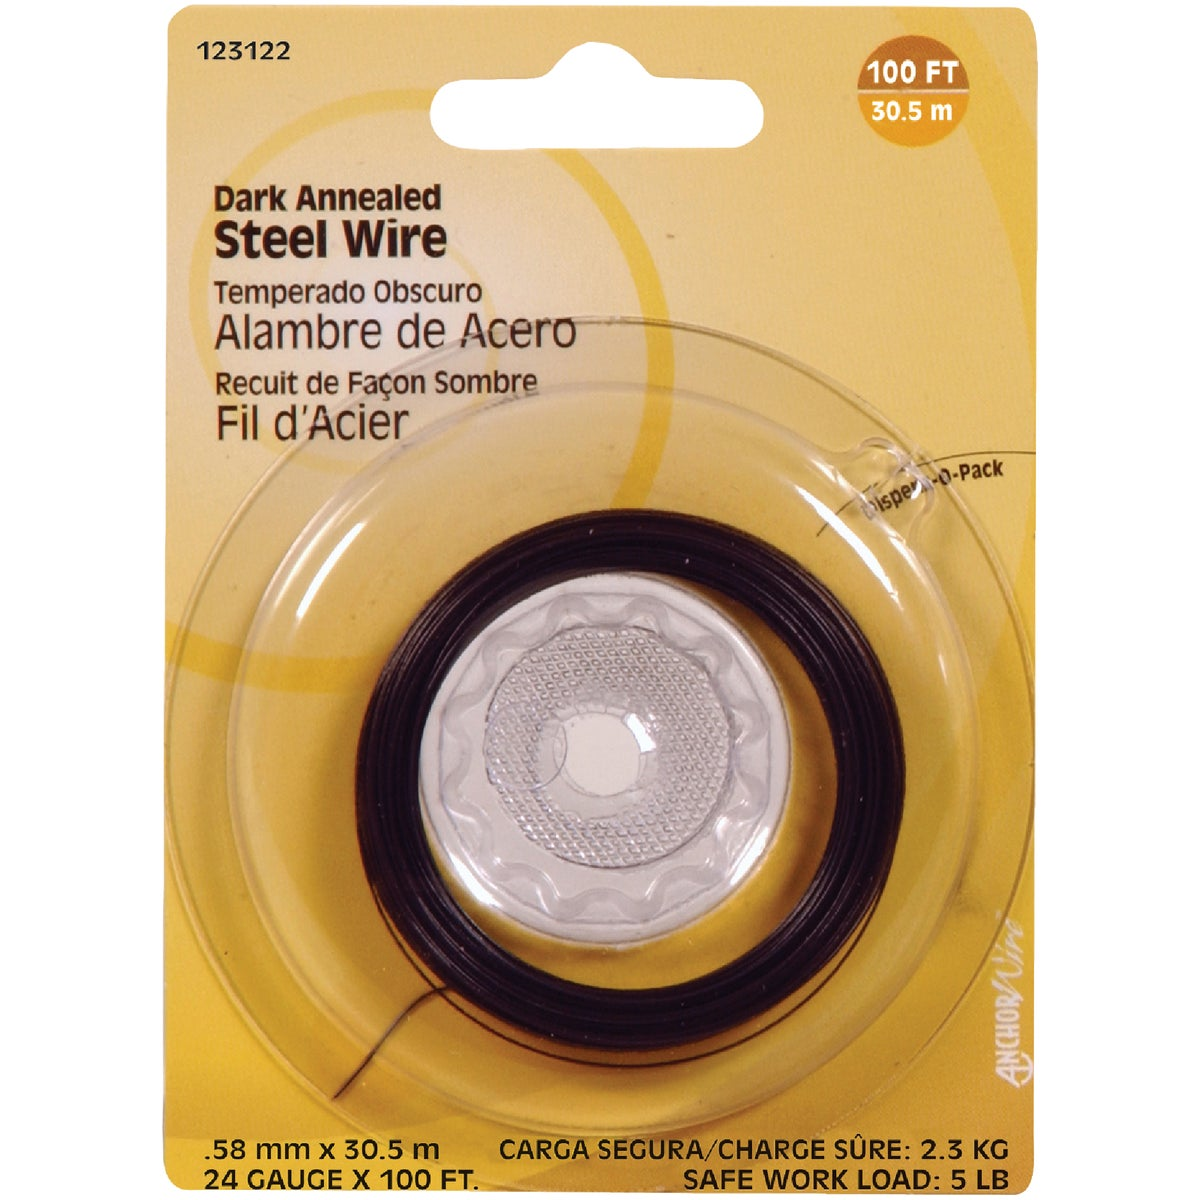 100' 24G BLACK WIRE - 123122 by Hillman Fastener